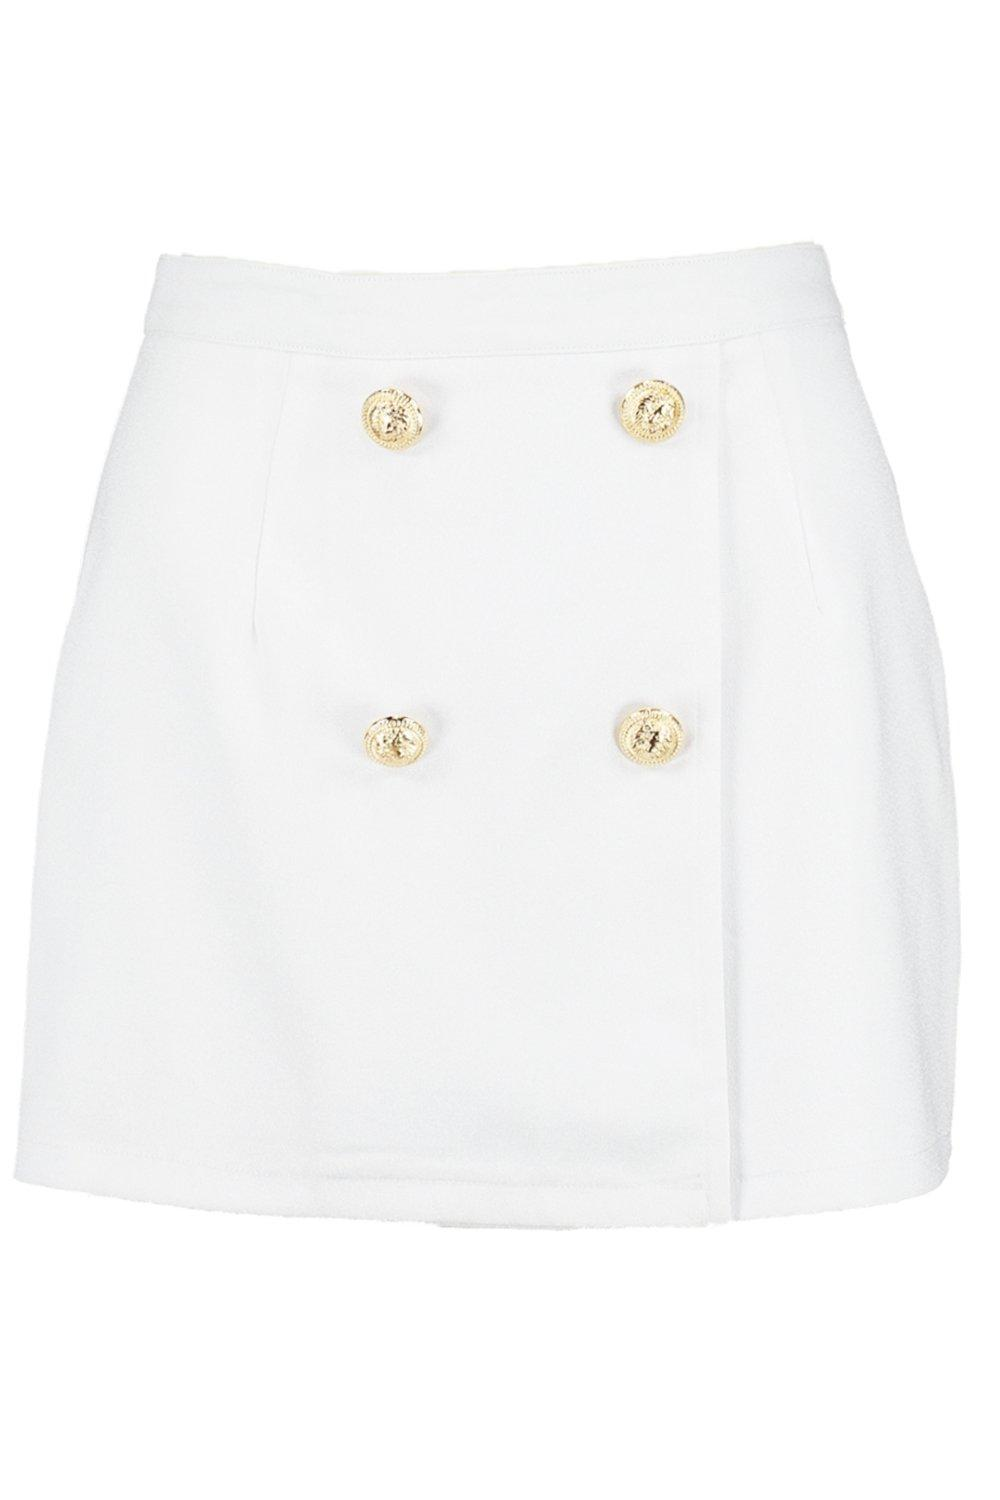 white Button Tailored Skort Detail Tailored Button vxOnXUvqY